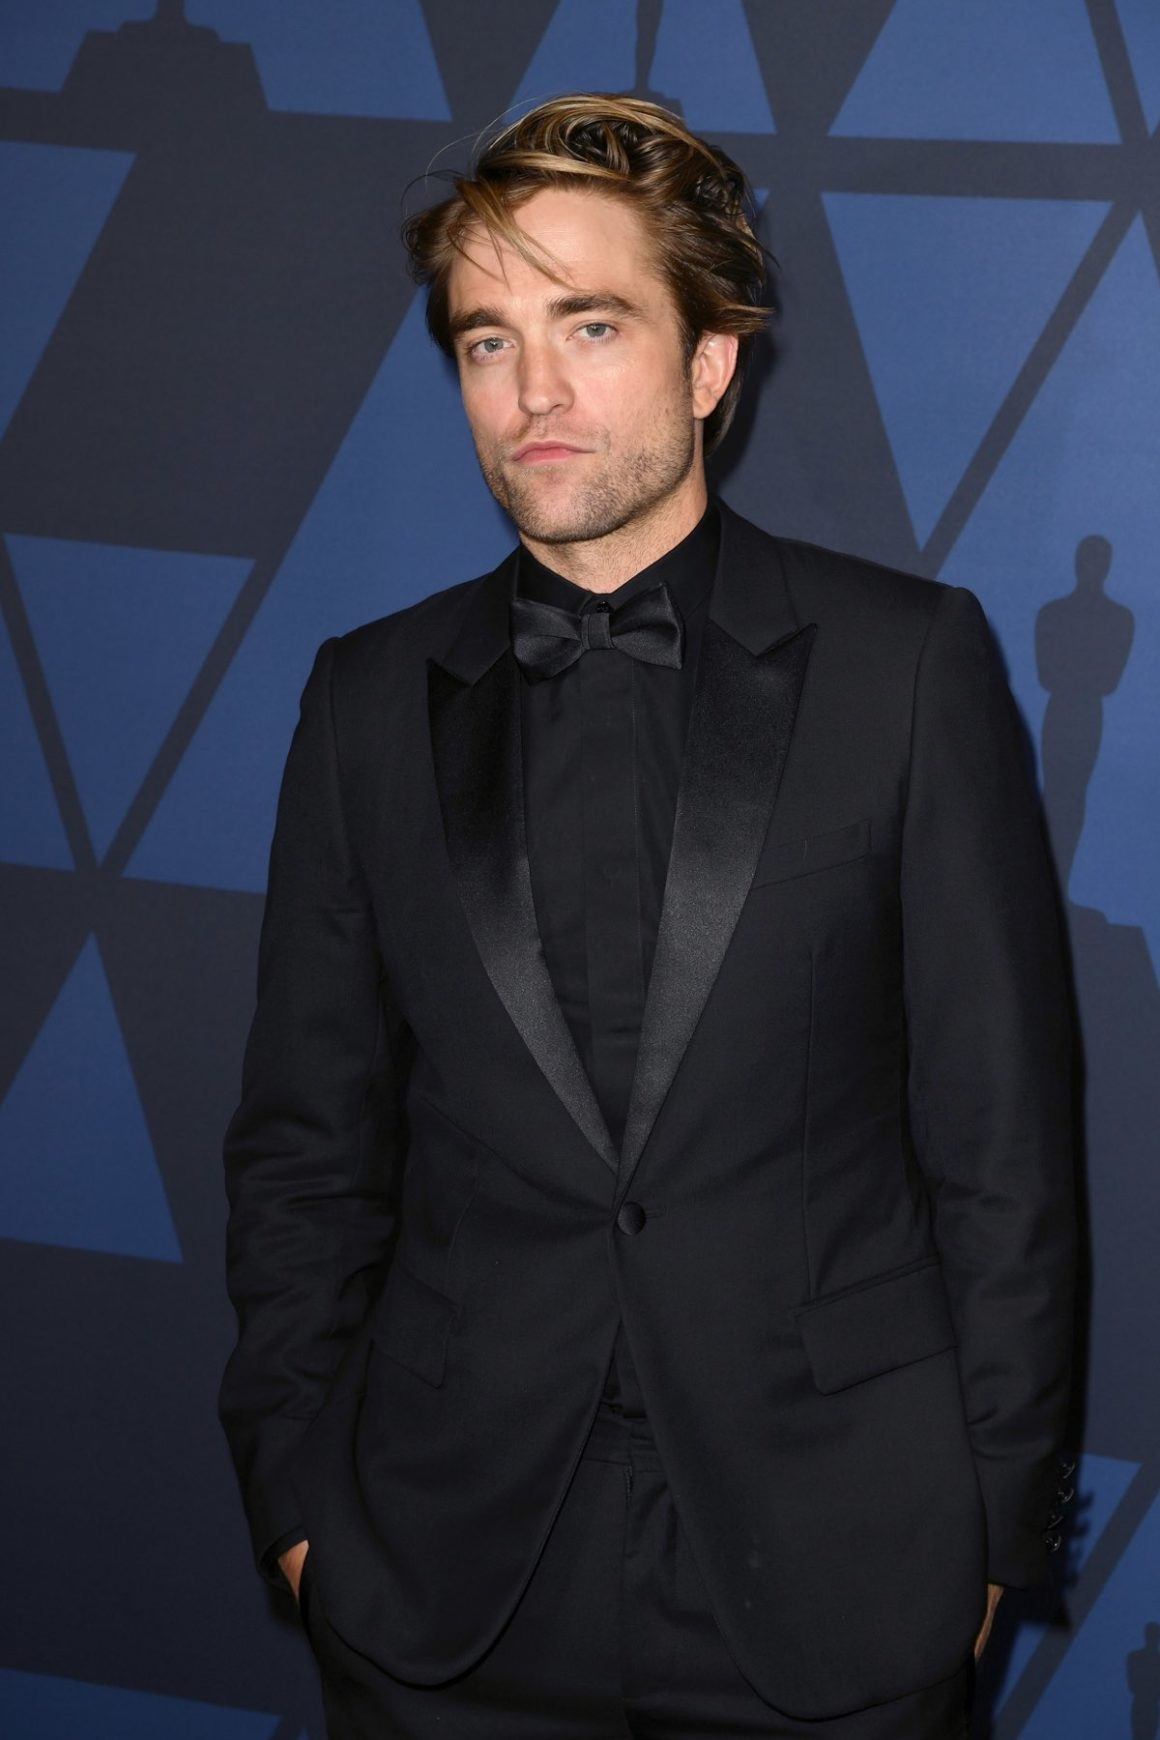 Robert Pattinson arrives to attend the 11th Annual Governors Awards